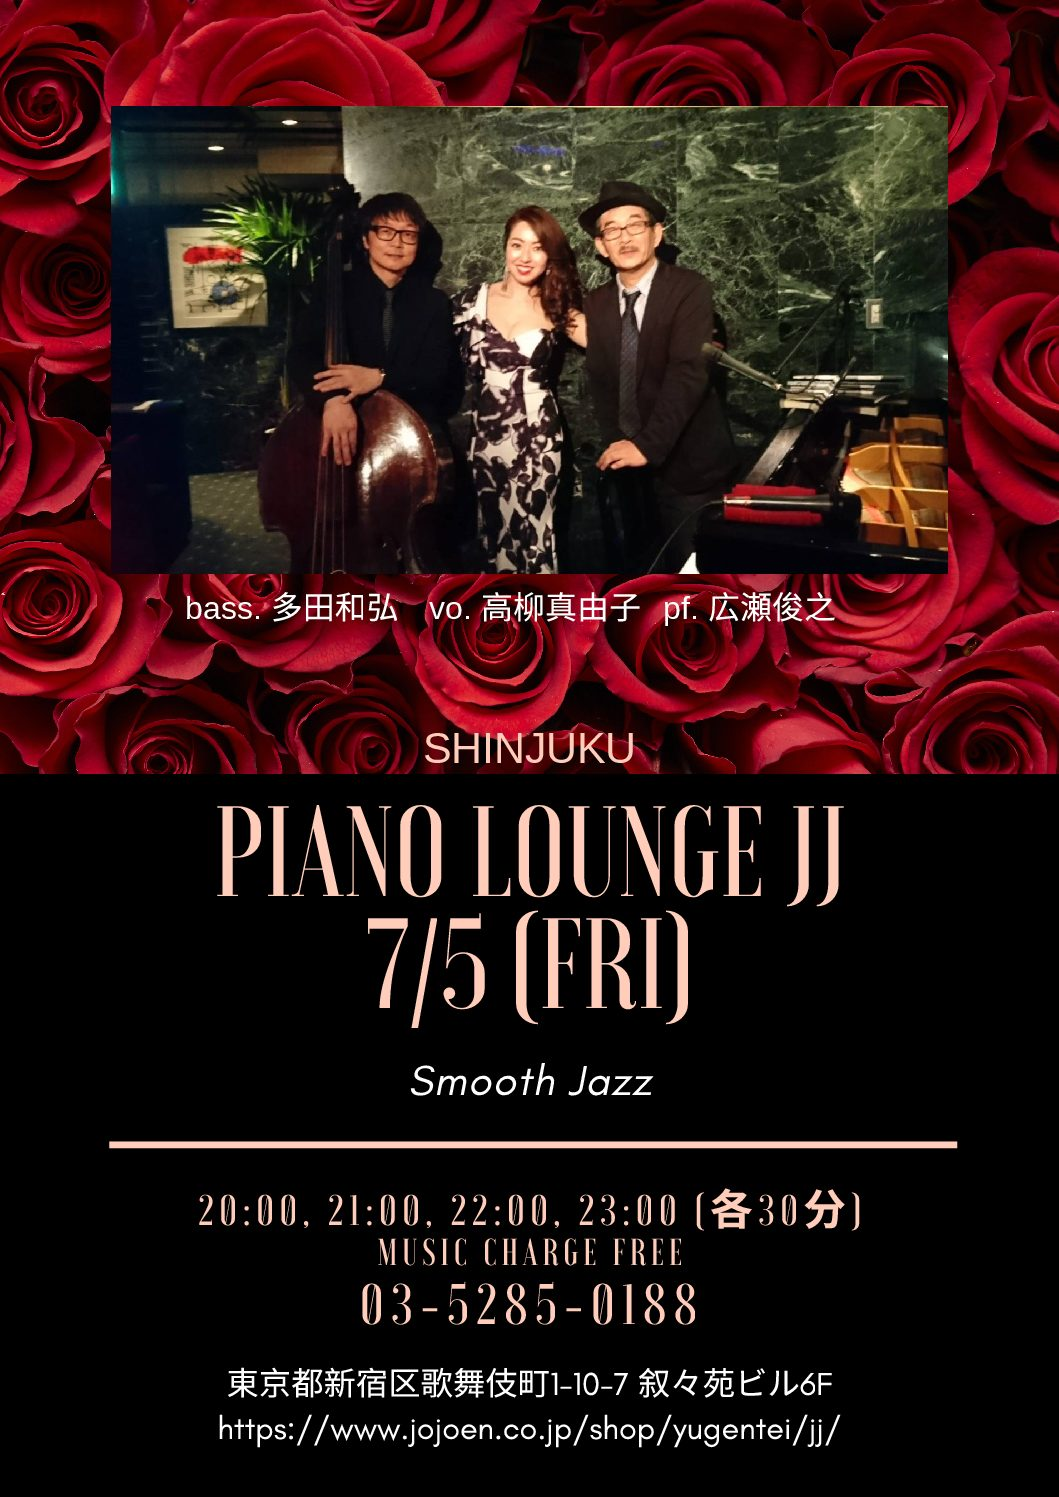 7/5 (FRI) PIANO LOUNGE JJ Flyer